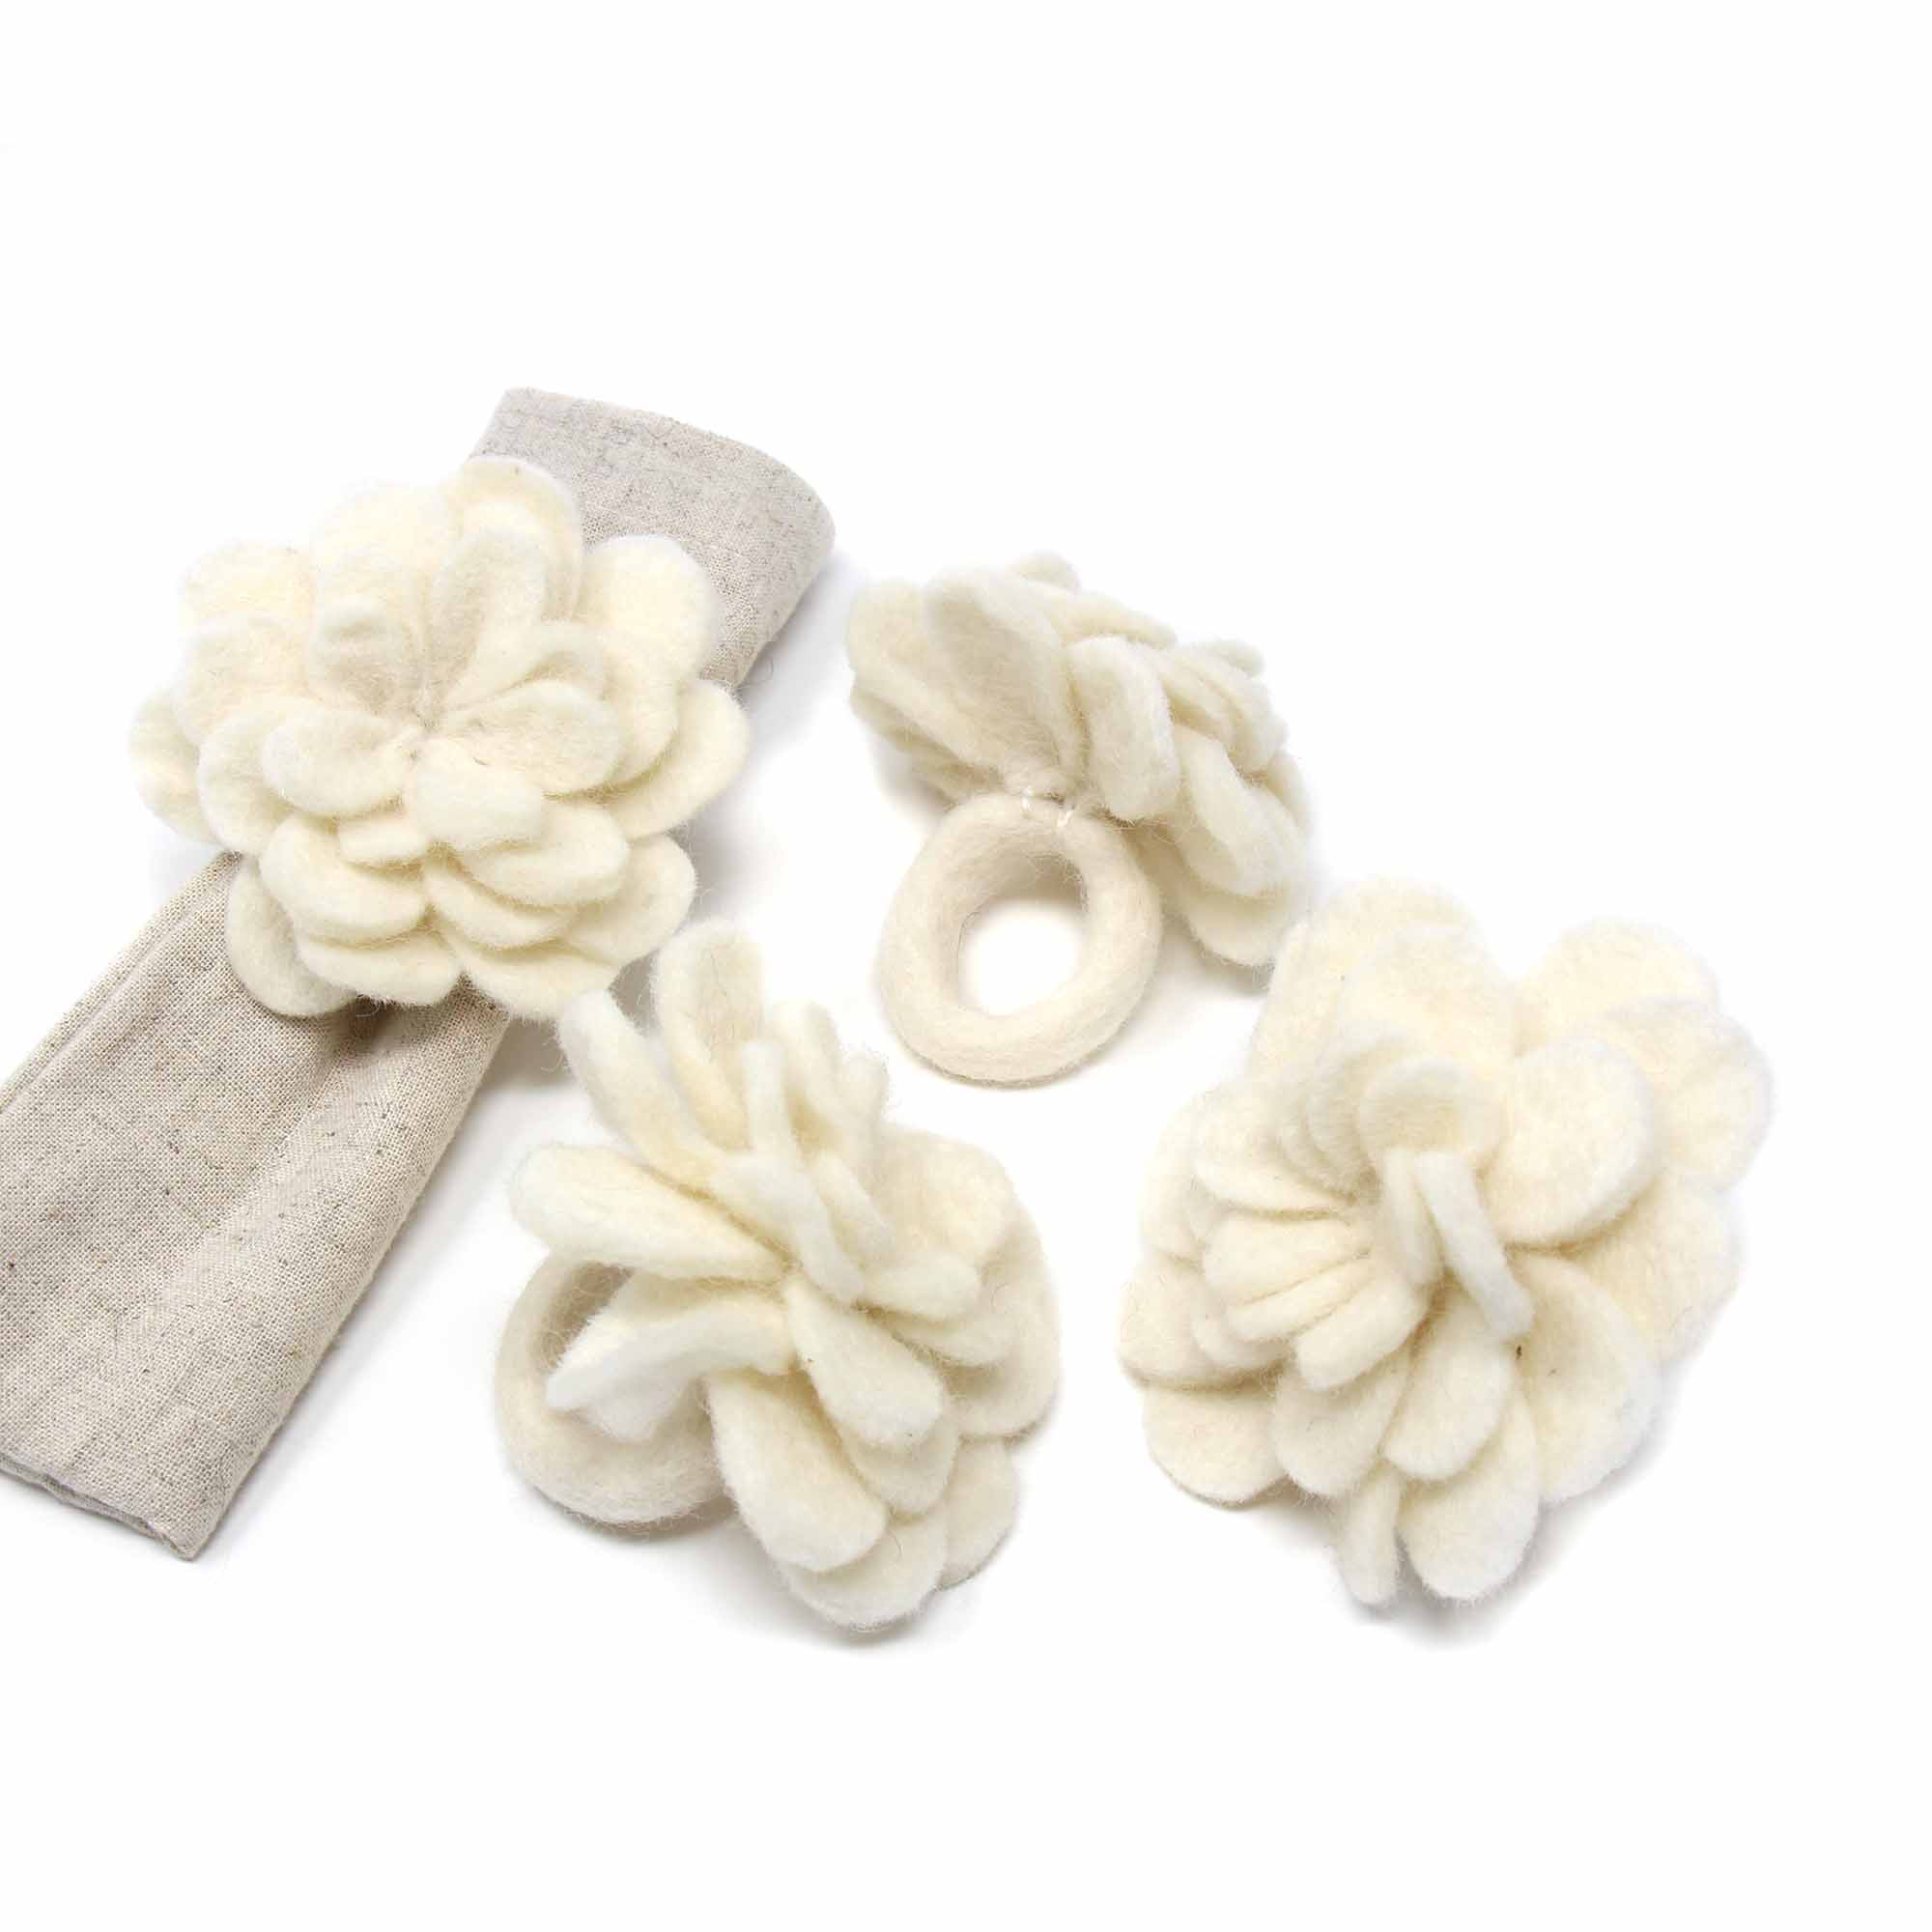 Set of 4 Napkin Rings, Cream Zinnias